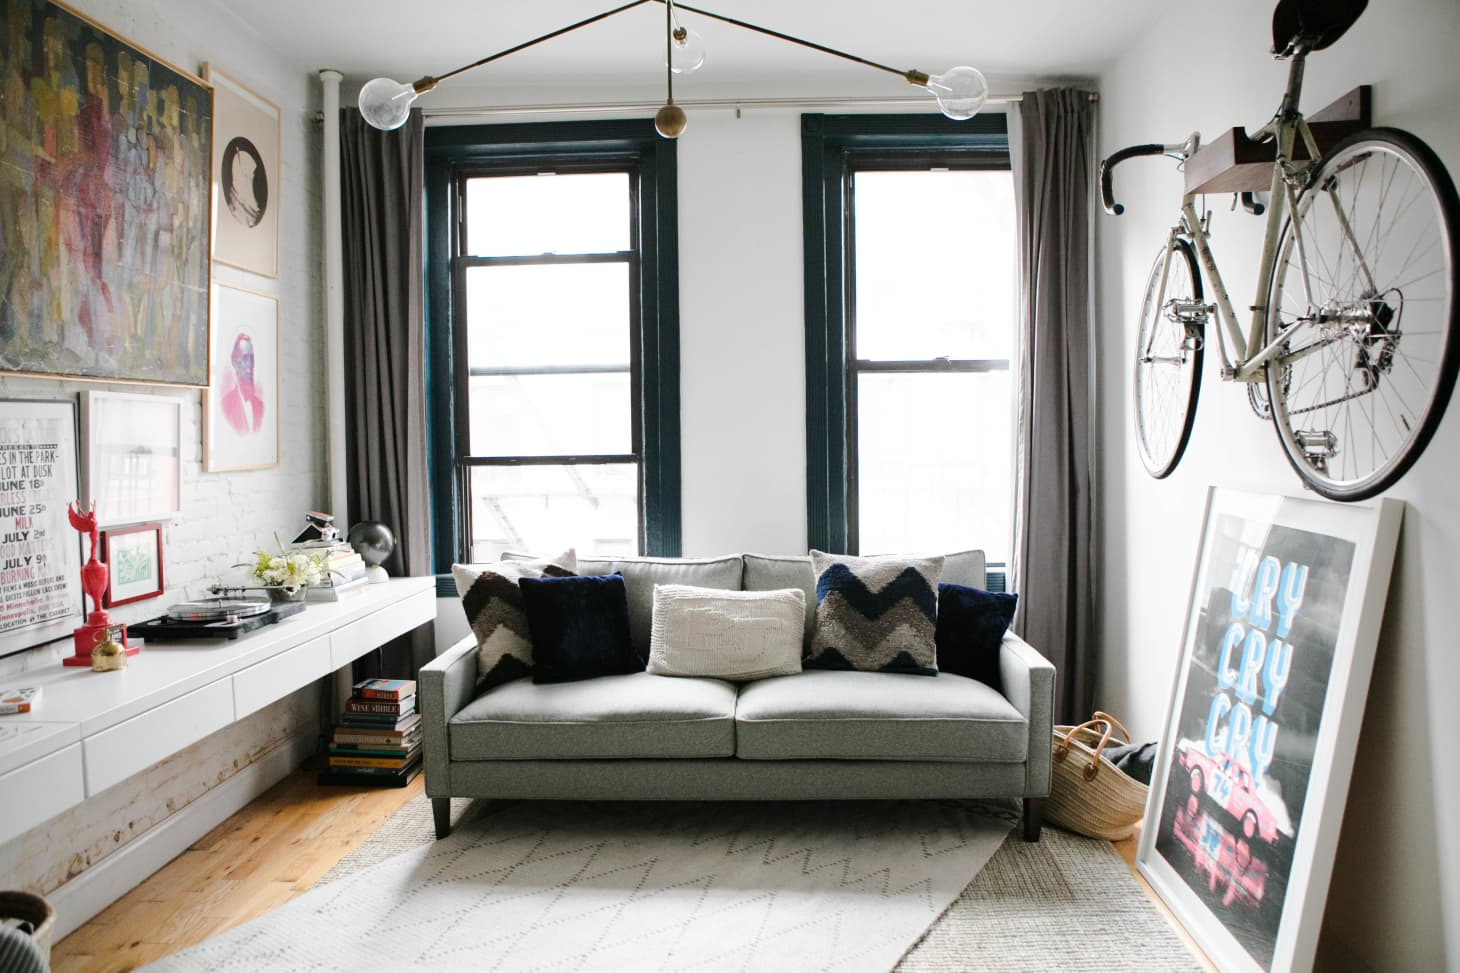 Patrick Janelle Living Room Decor Photos and Inspiration ...